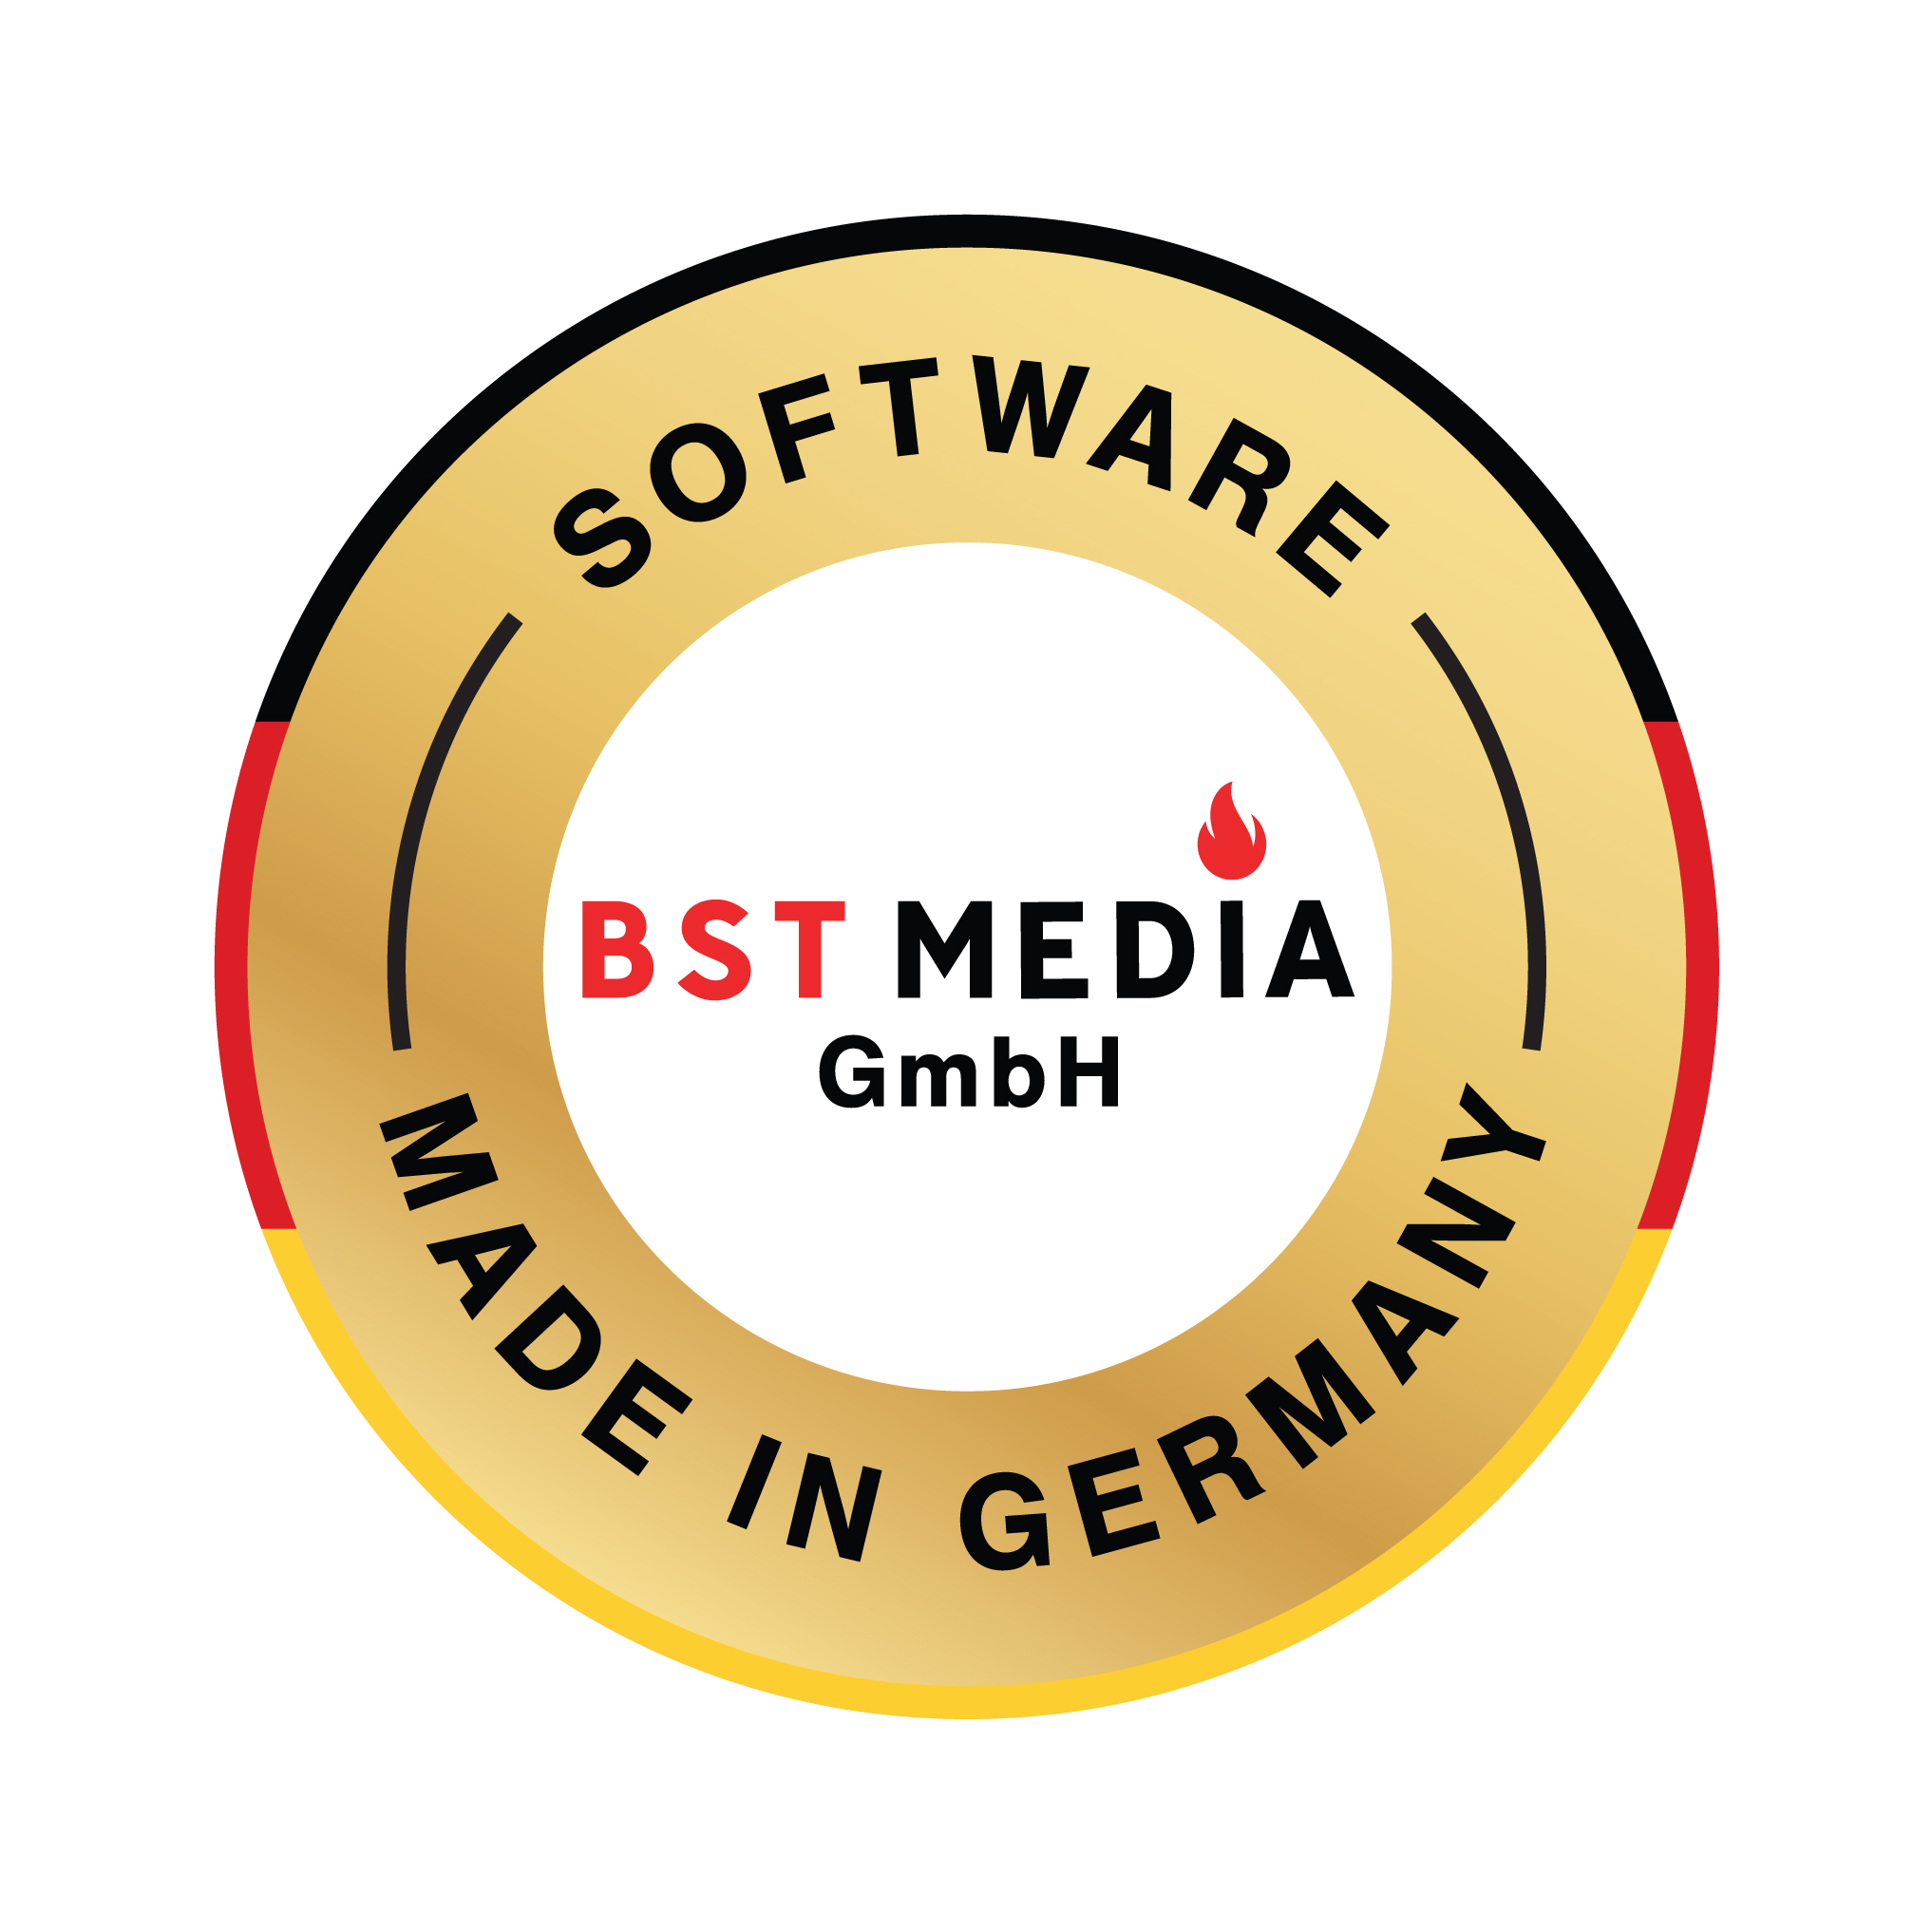 BST Media - Software made in Germany